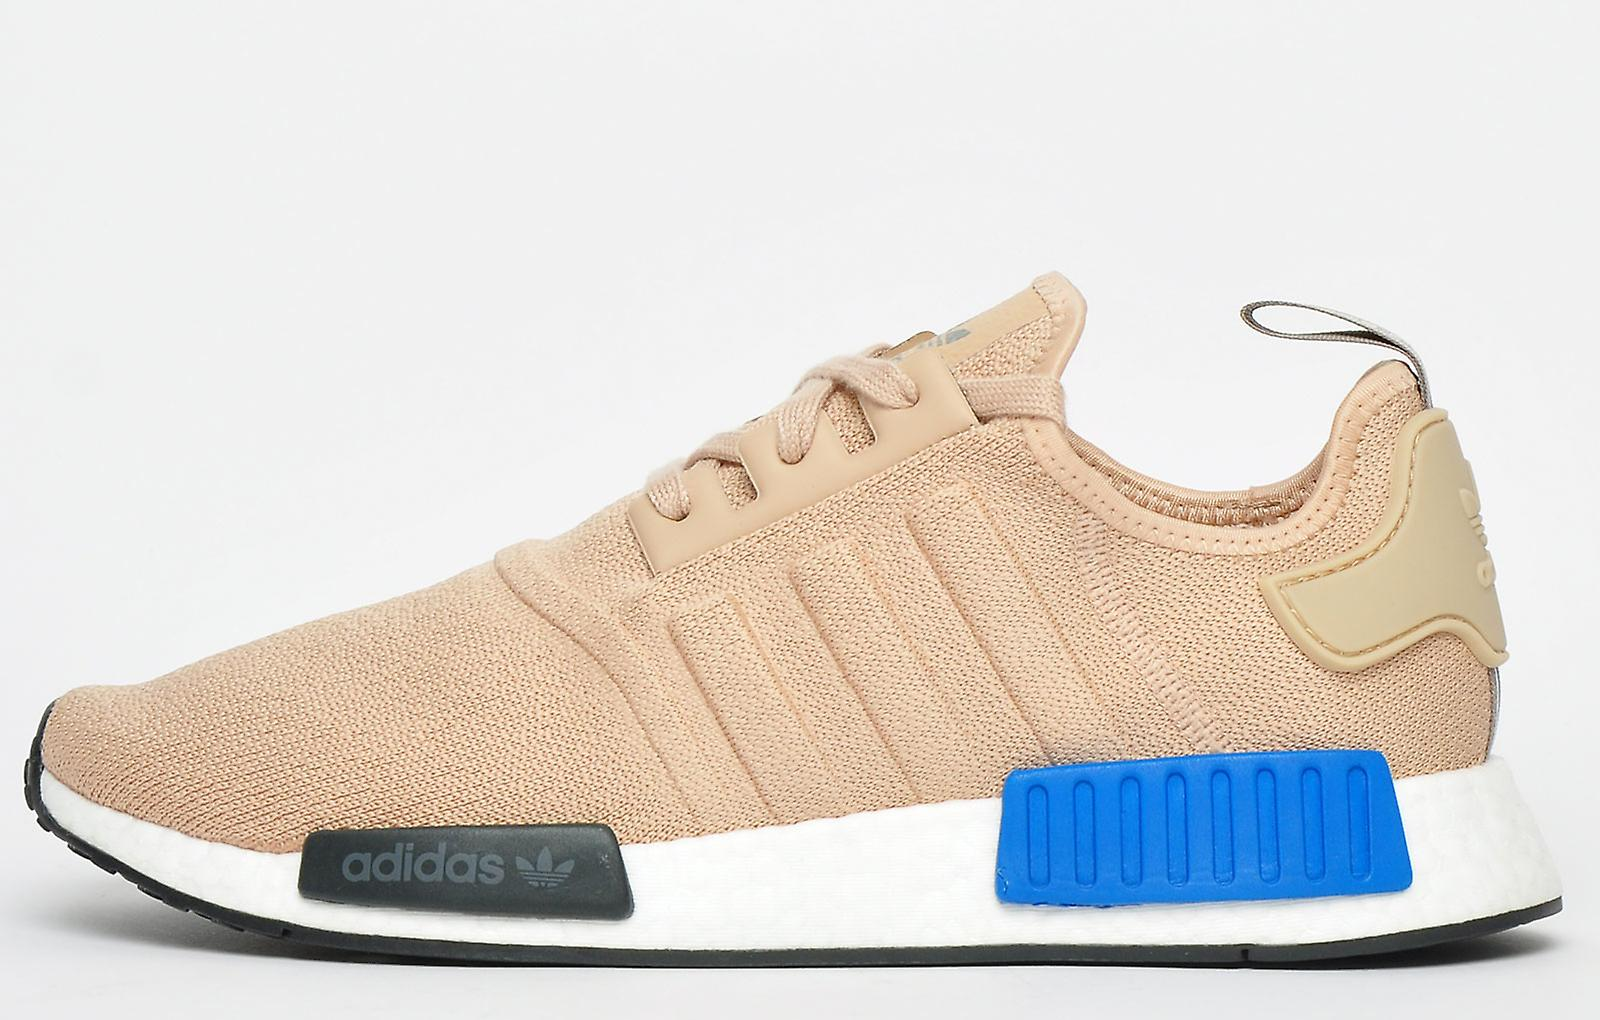 Adidas Sneakers | NMD_R1 The Child - Find Your Way Schuh